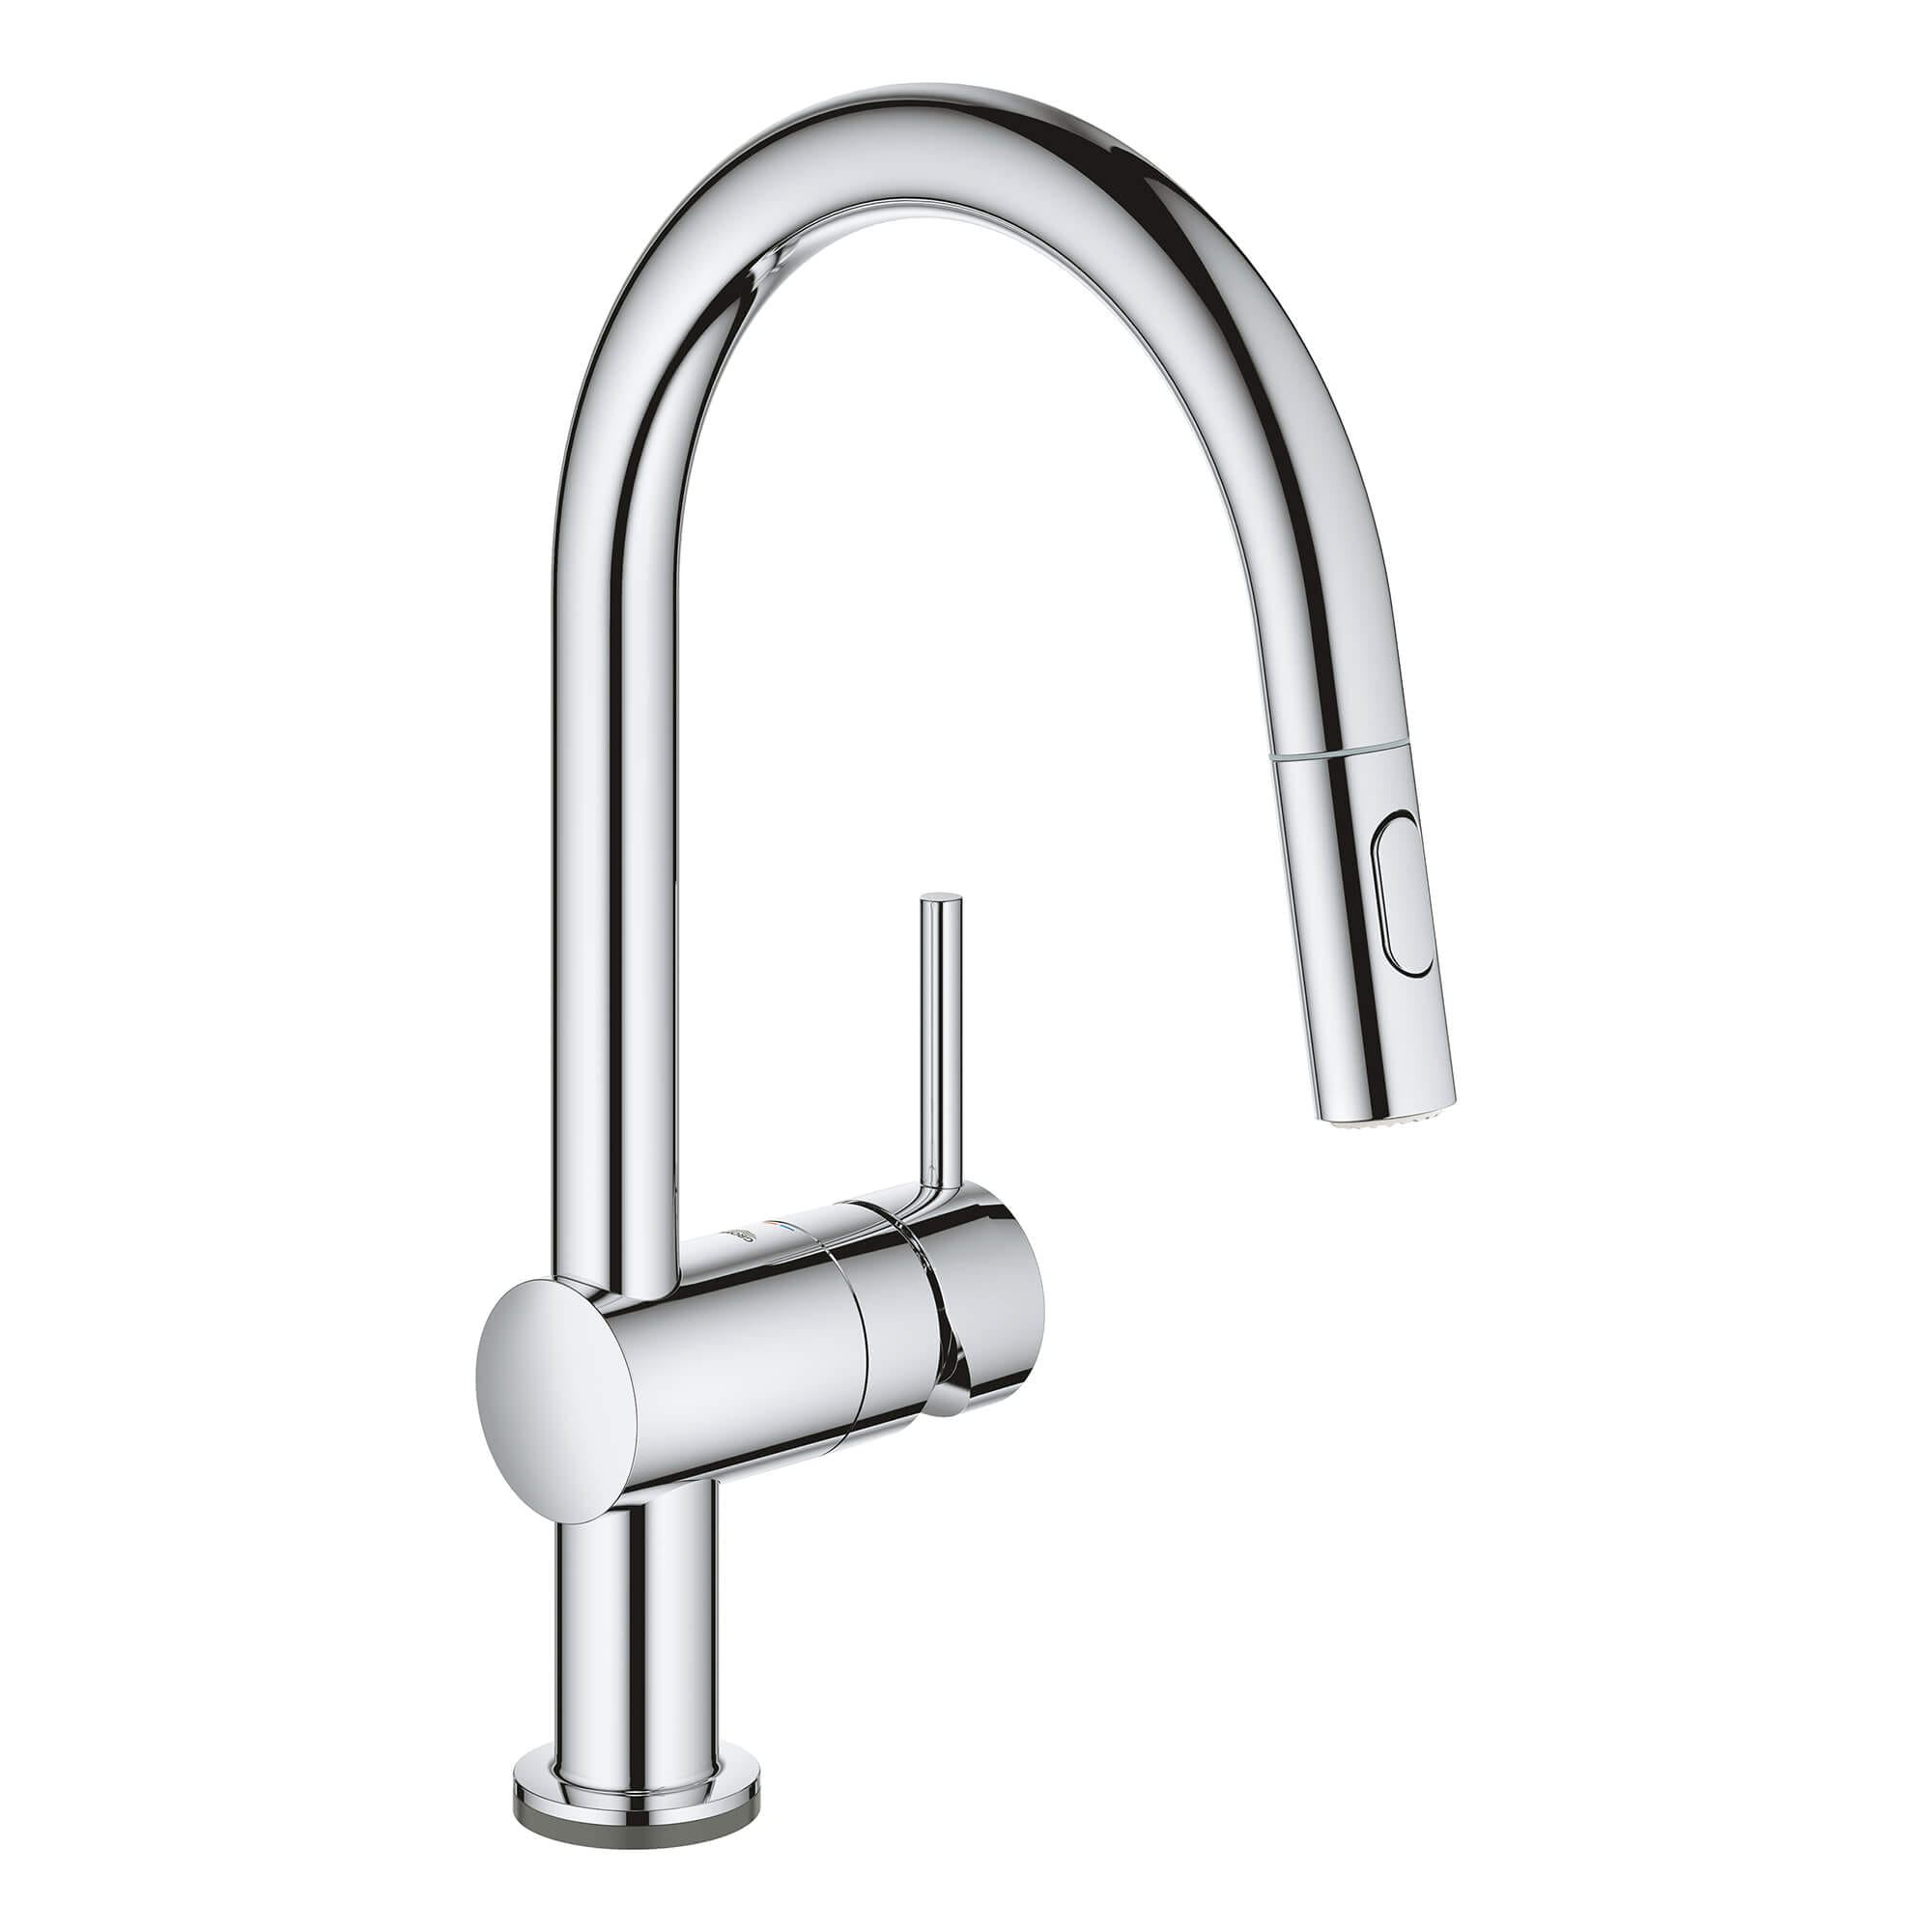 Single Handle Pull Down Kitchen Faucet Dual Spray 1 75 Gpm With Touch Technology